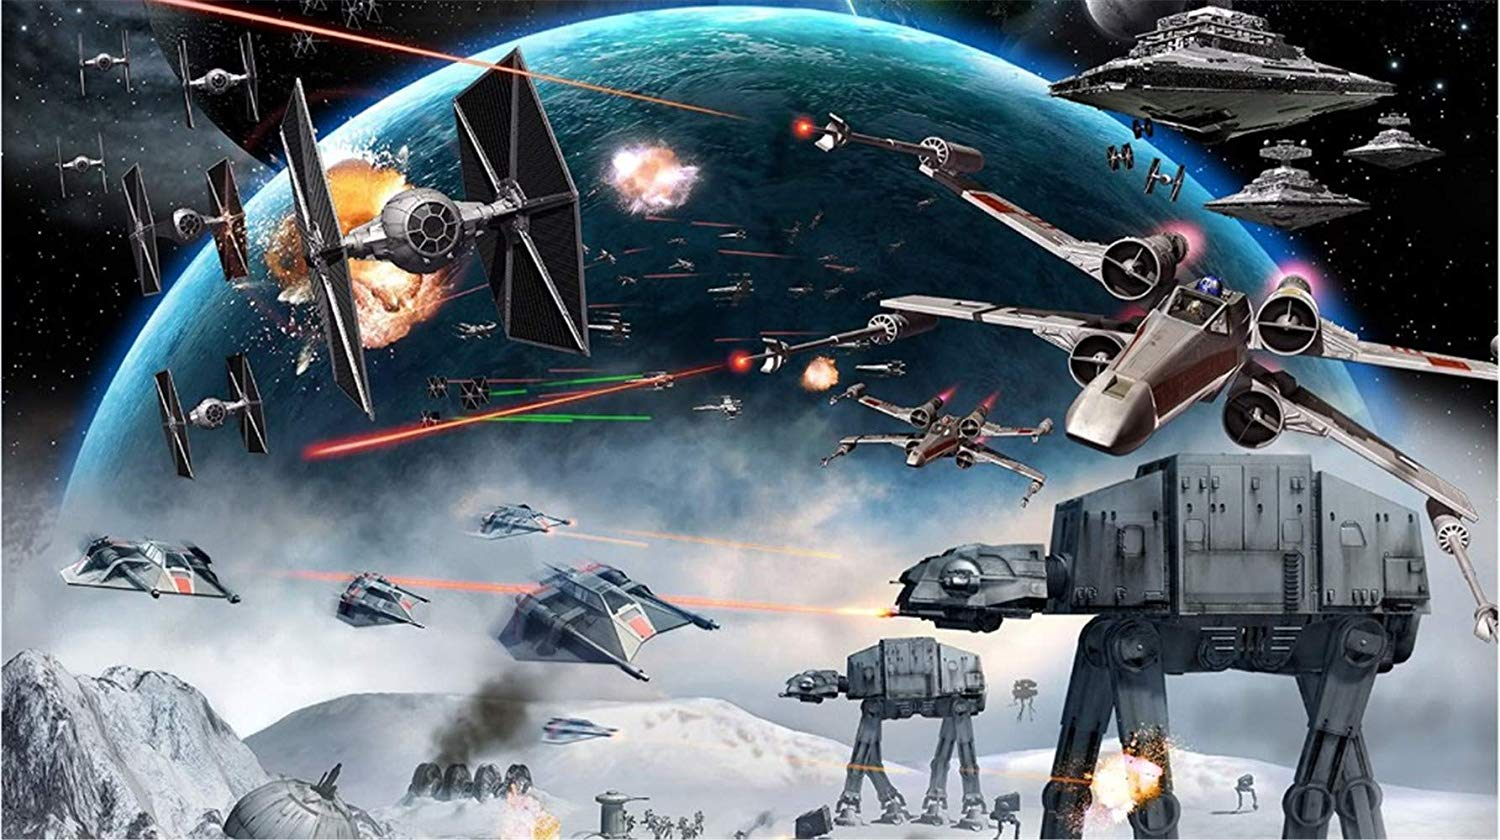 Amazoncom Photography Backdrop Outspace 7x5ft Star Wars Force 1500x840